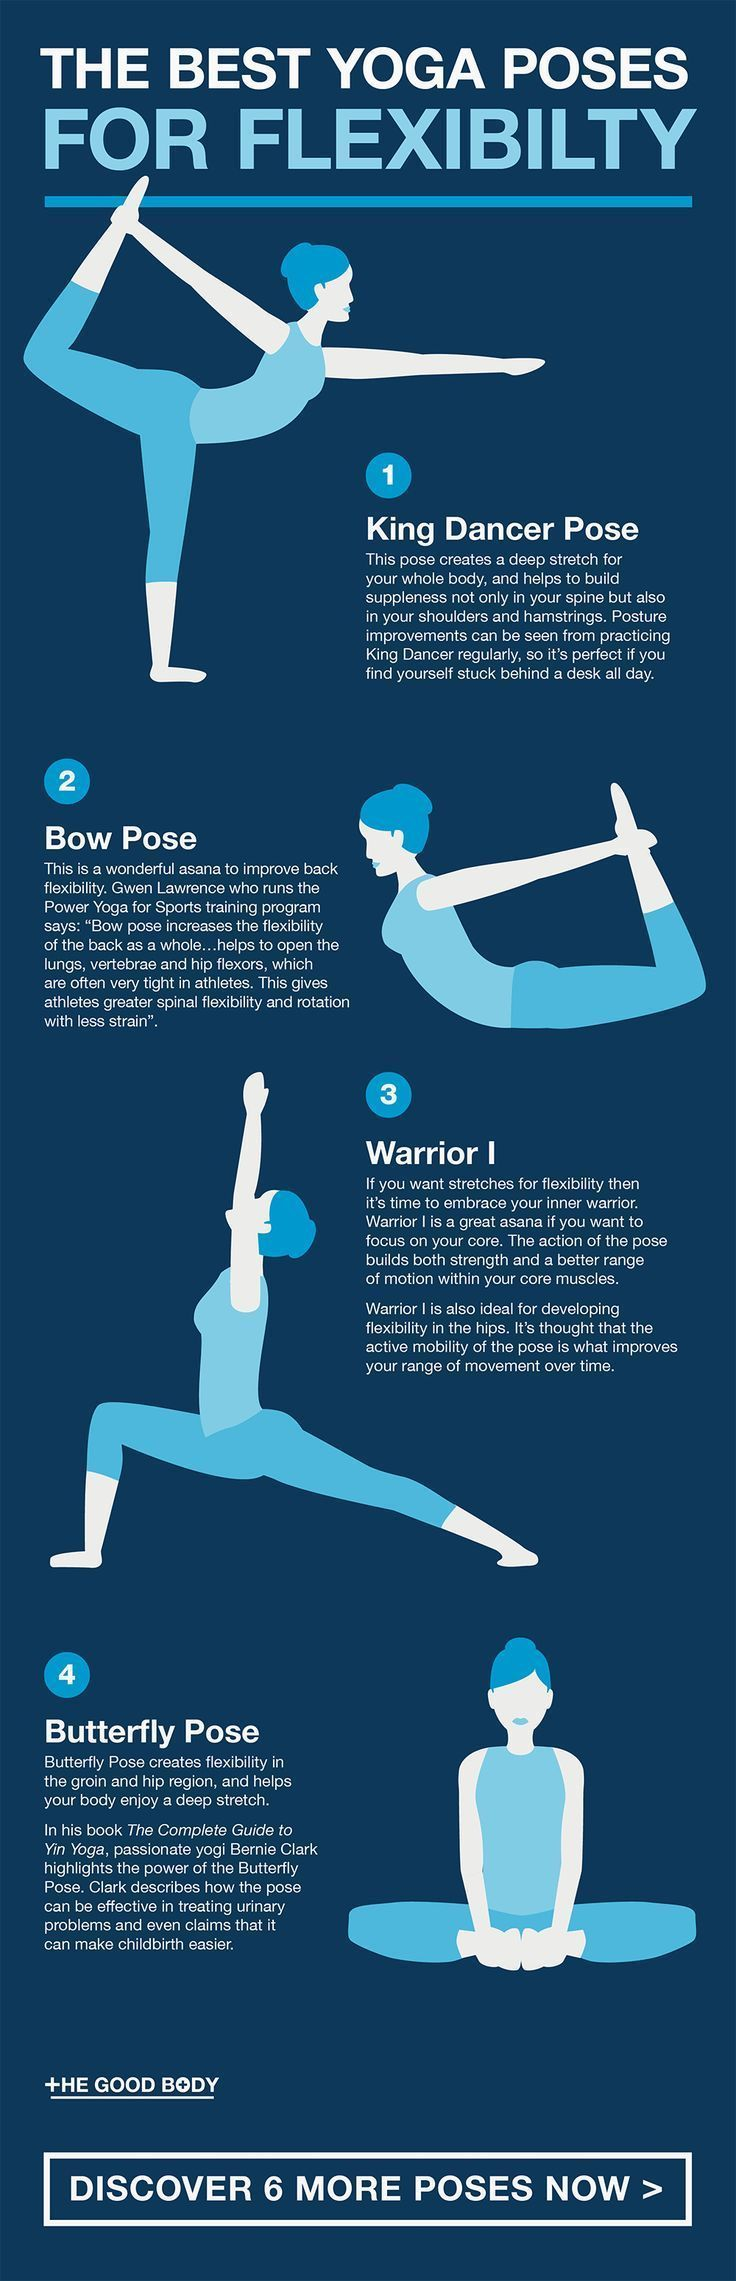 The latest yoga statistics show that improving flexibility is the most popular reason for starting y...